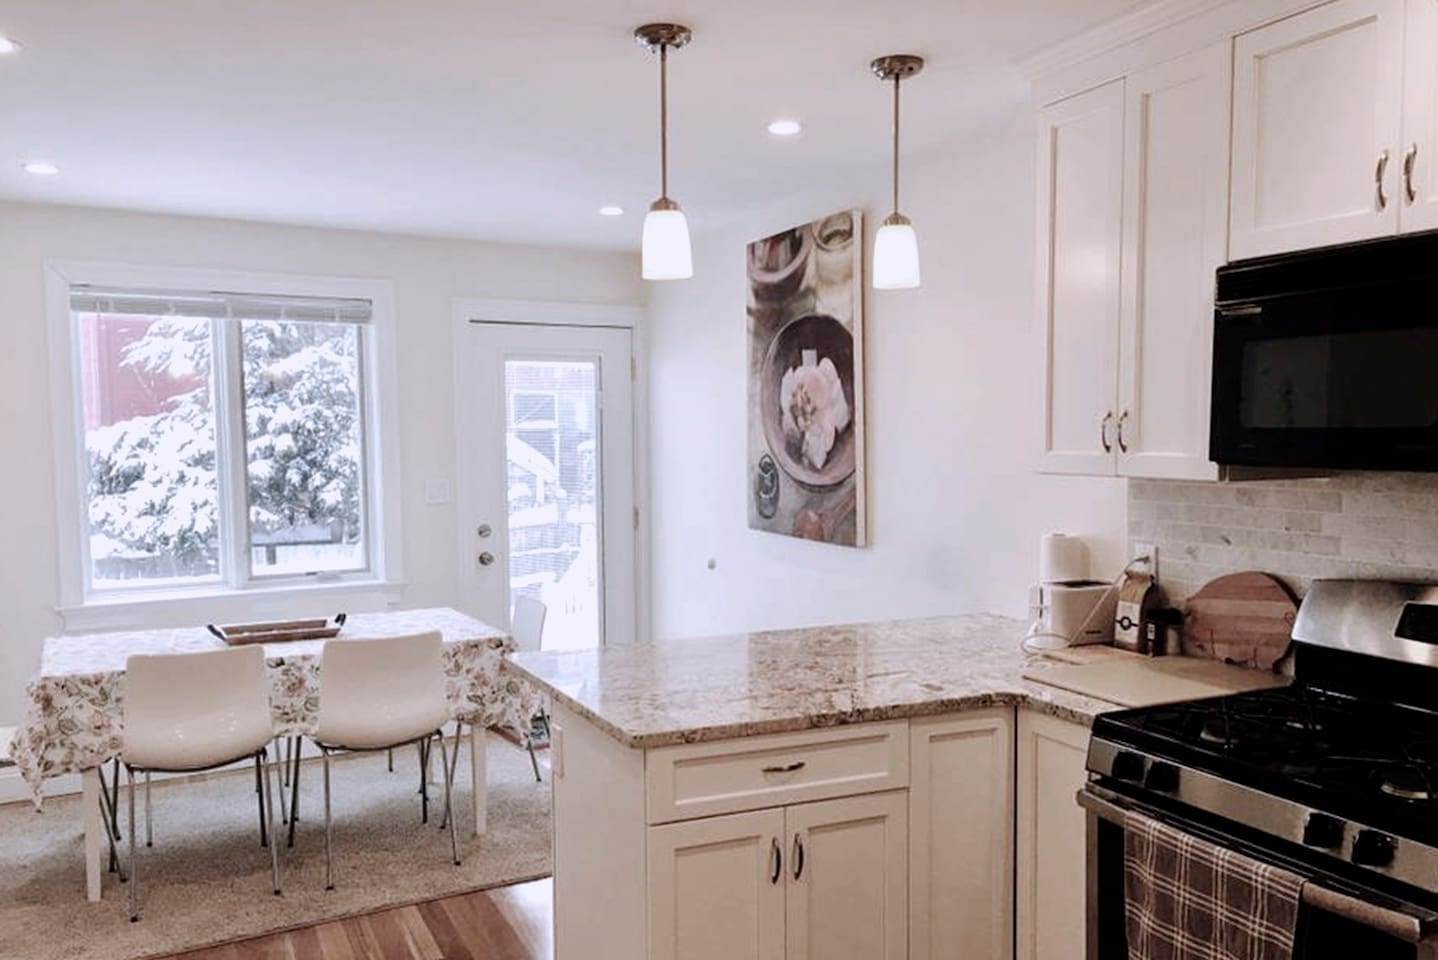 Granite kitchen with stainless steel appliances and open dining room